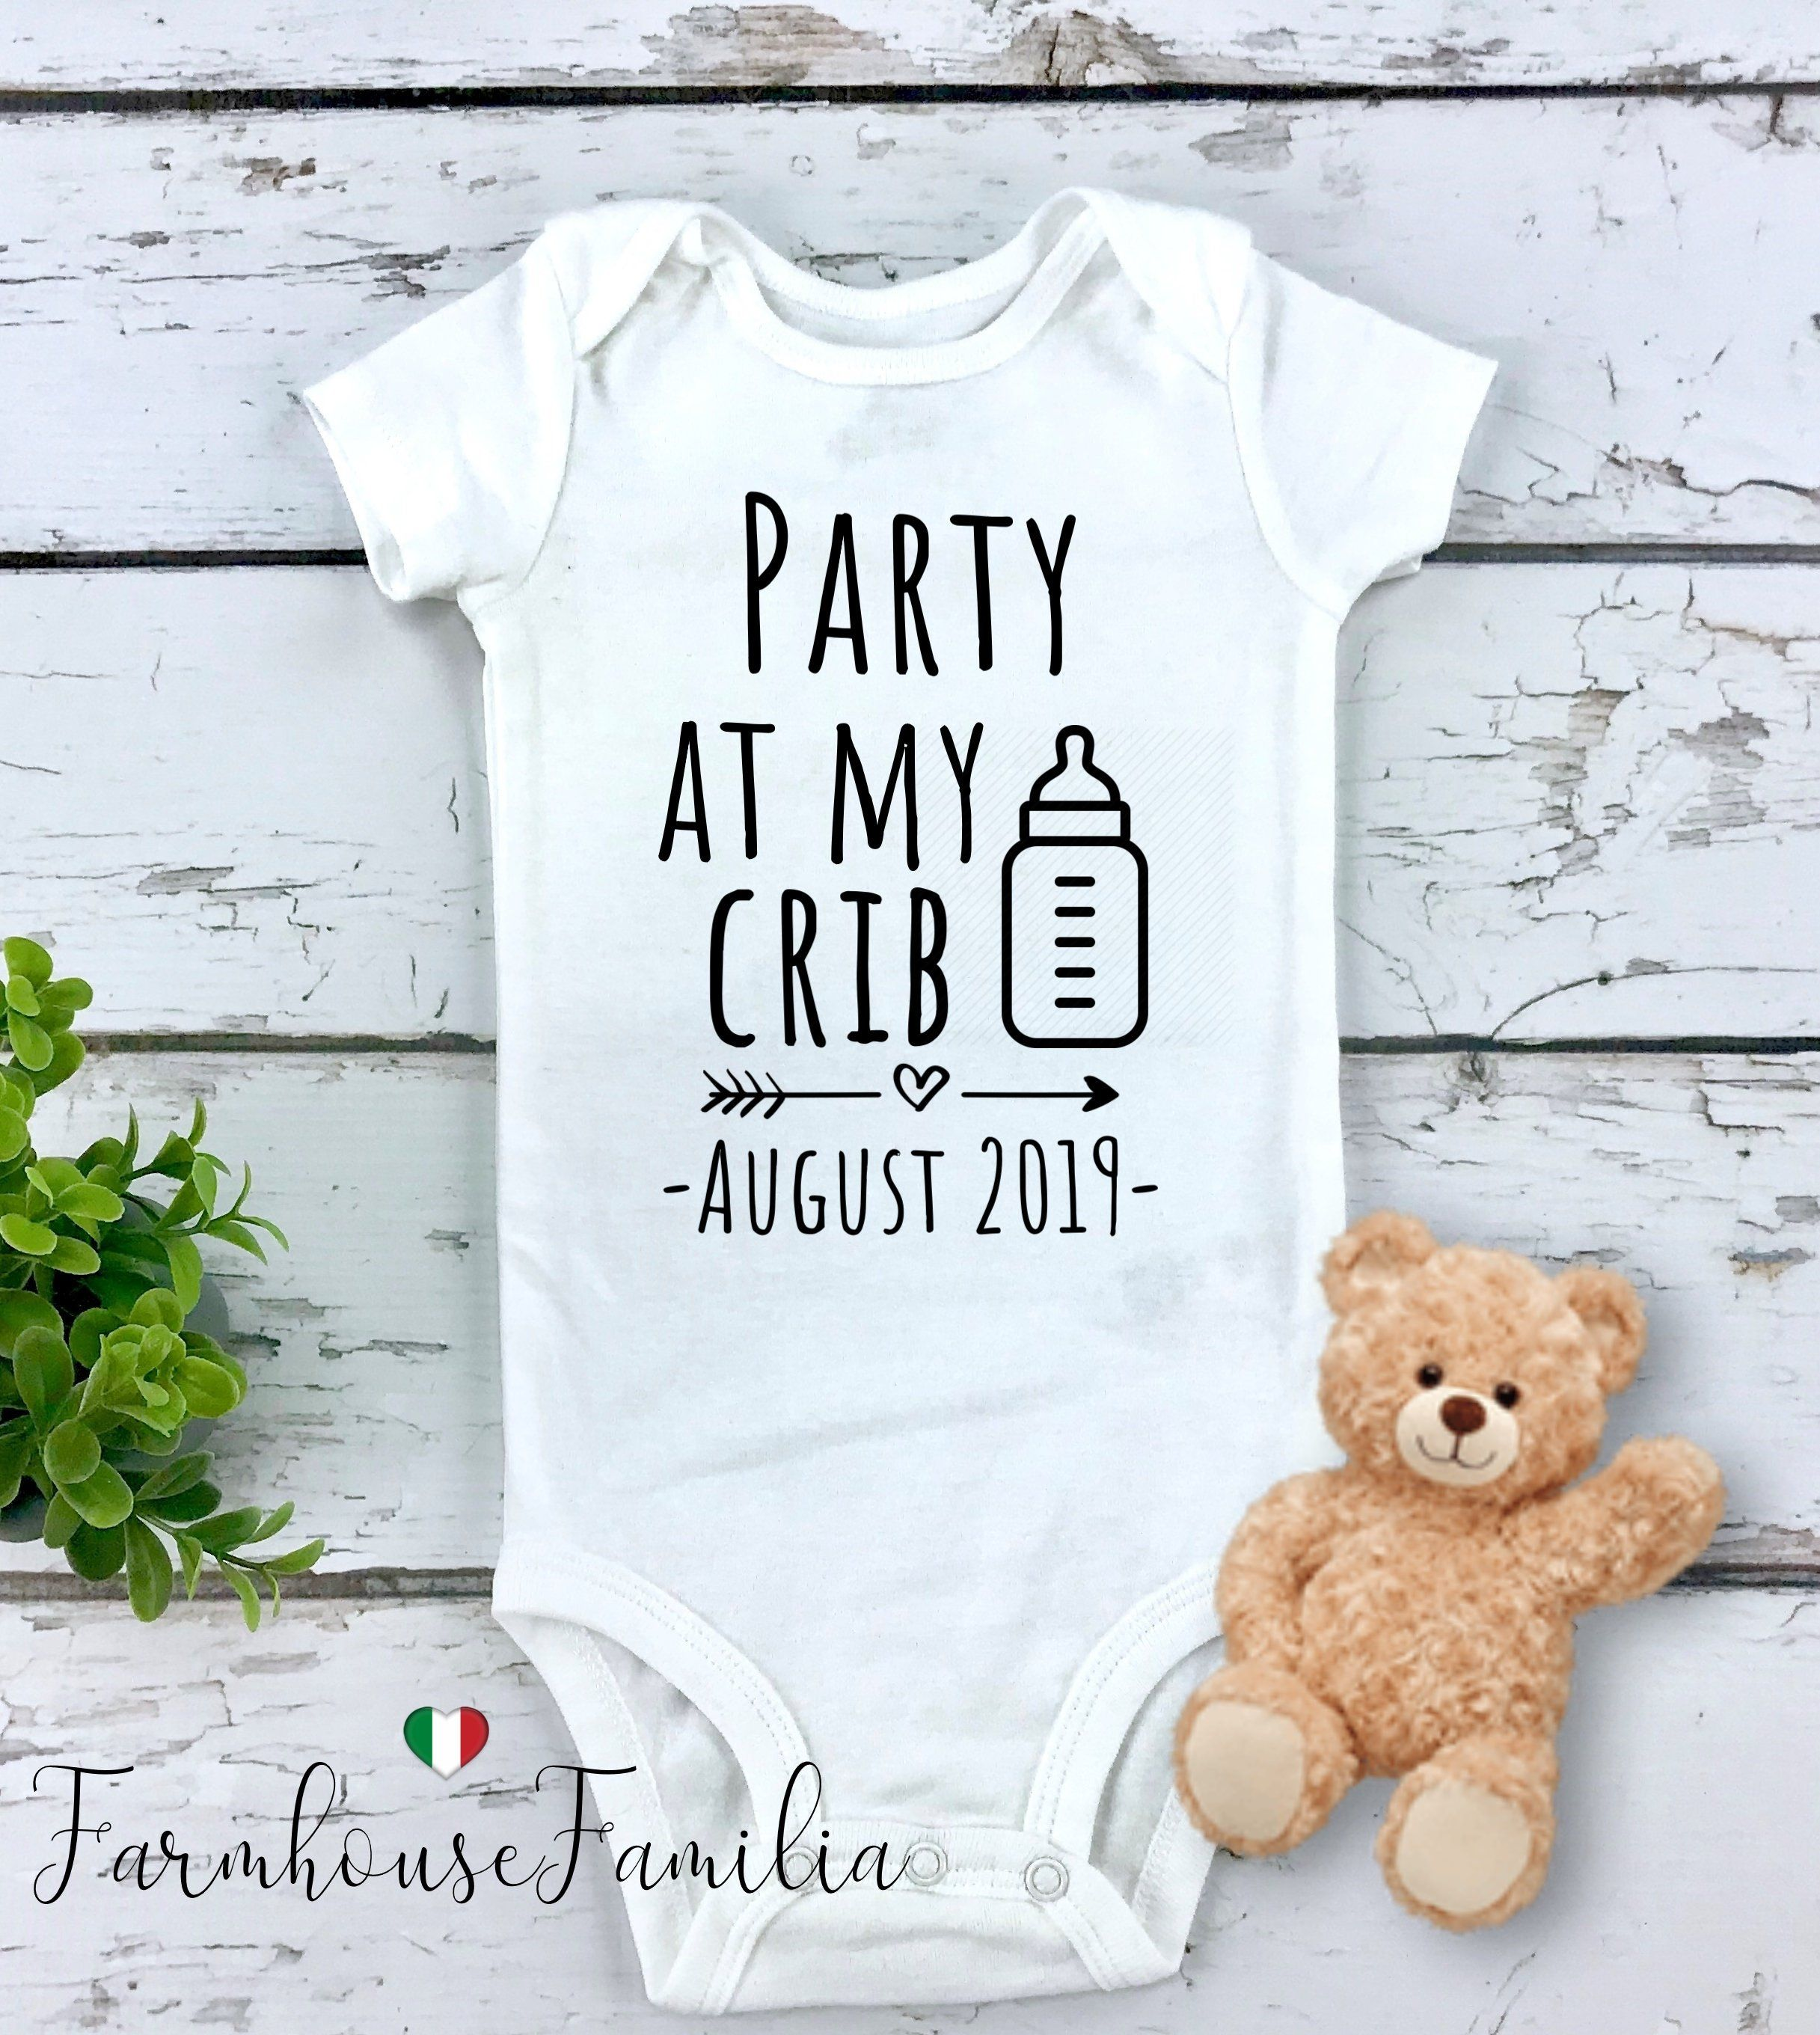 Great Baby Shower Gift Is it Legal to have. FUNNY one piece body suit